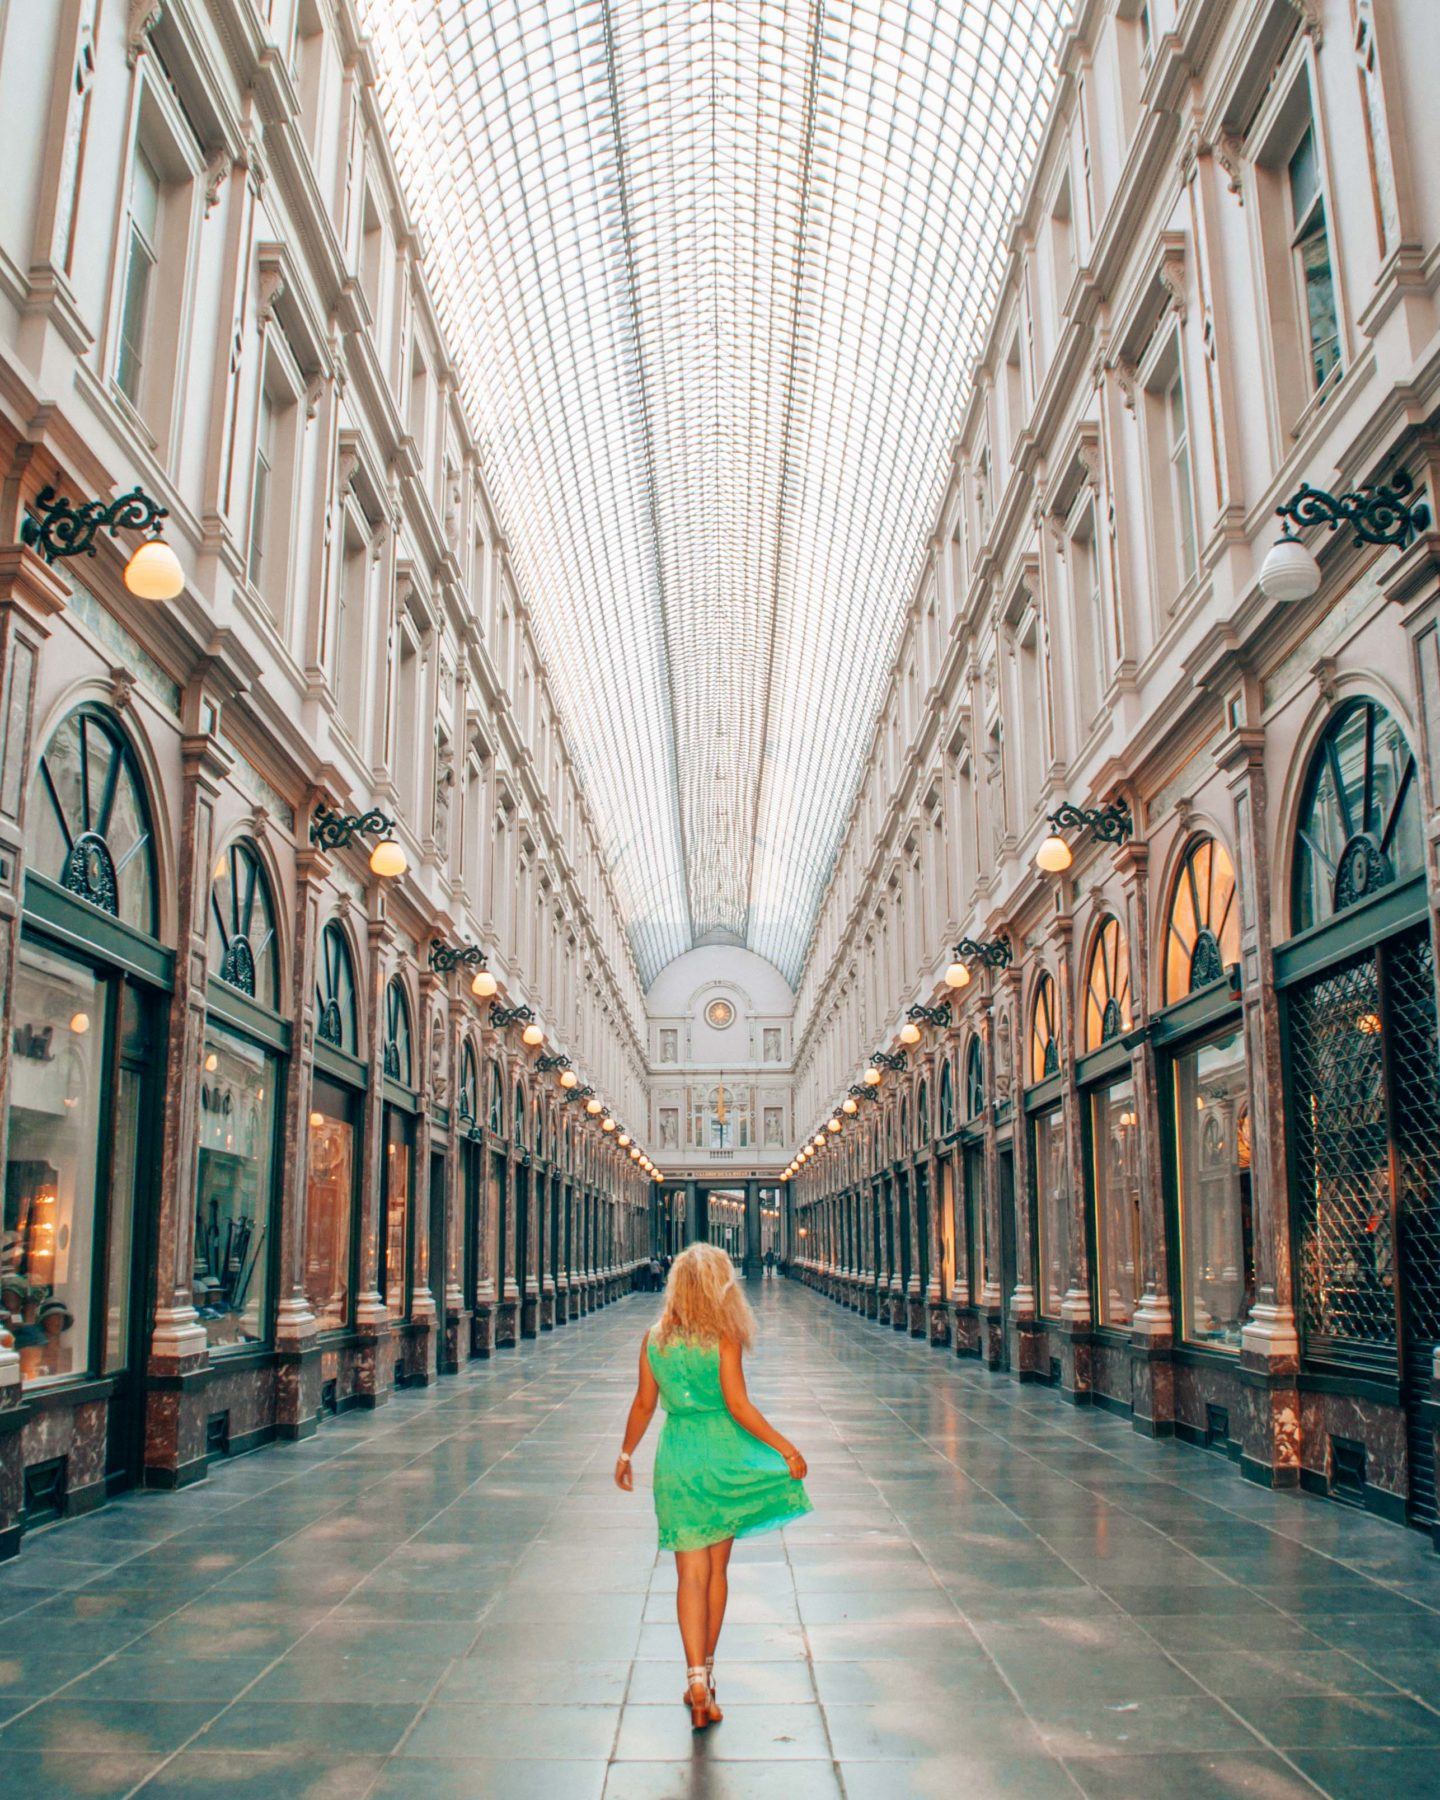 Follow me to Brussels in the Galeries Royales Saint Hubert